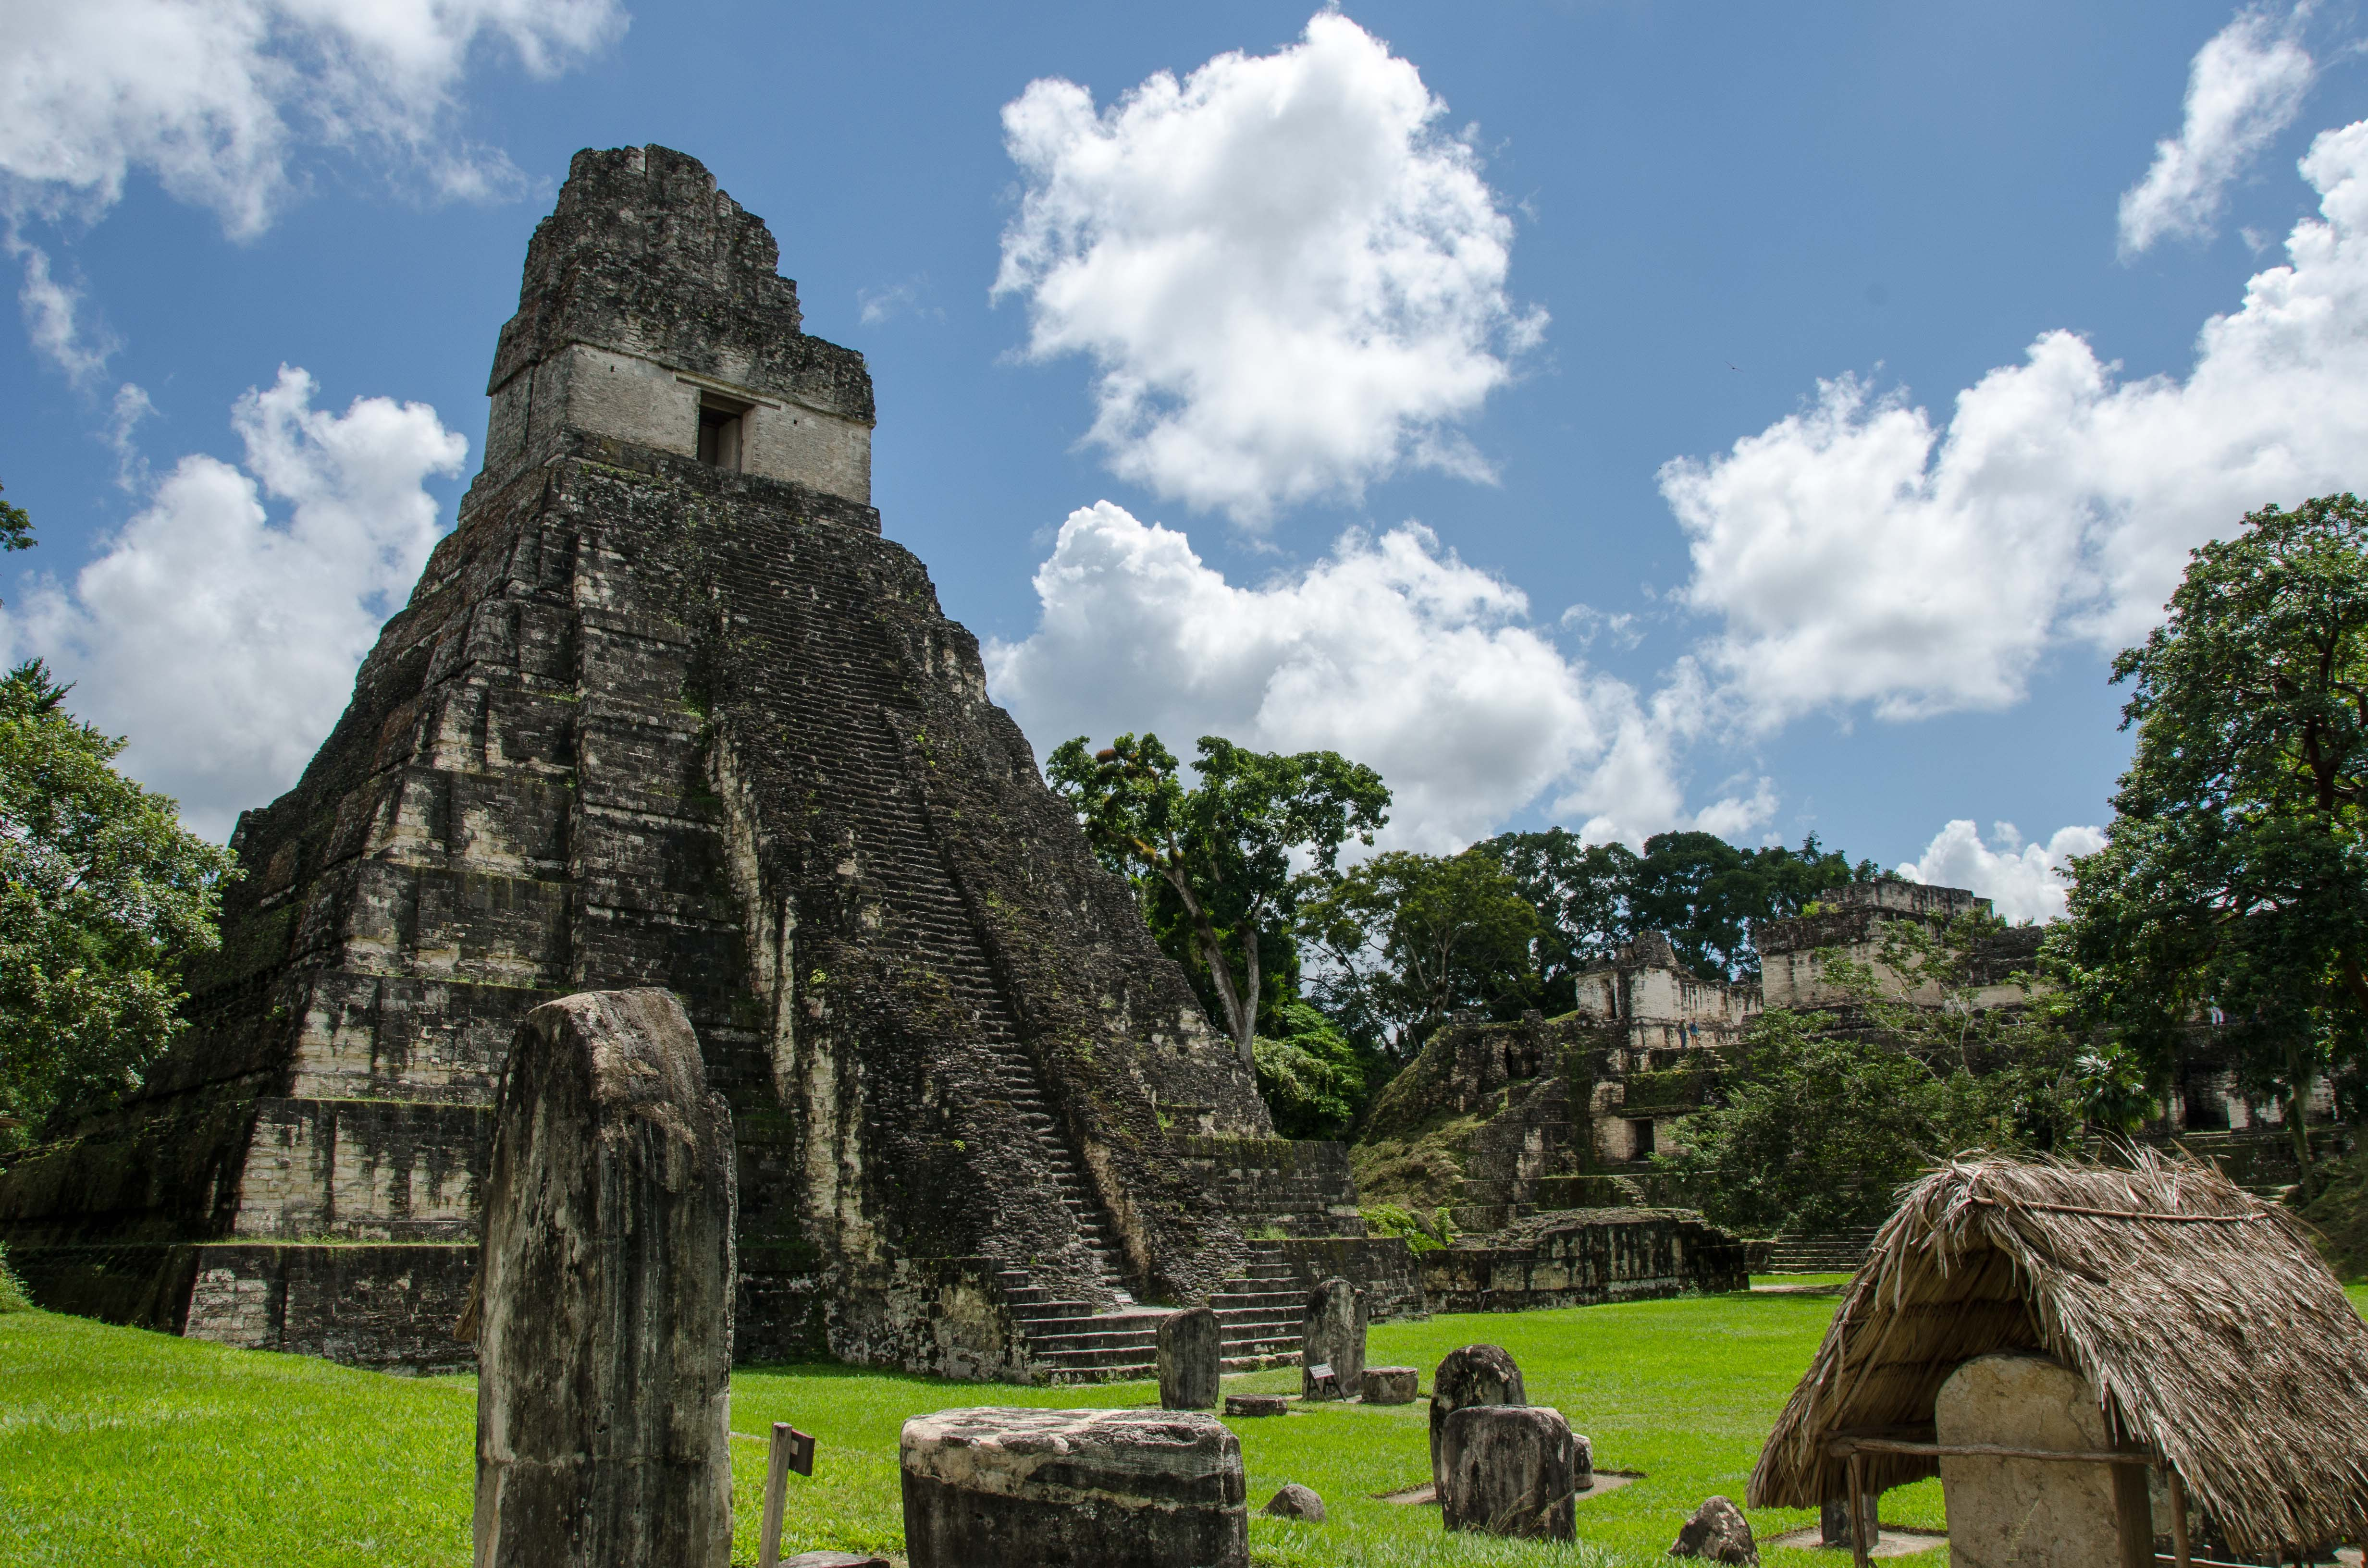 traveling to guatemala Guatemala is gaining popularity as a travel destination, and it's no wonder why: this diverse country has a lot more to offer than just sunshine and coffee tours peppered with more than 33.